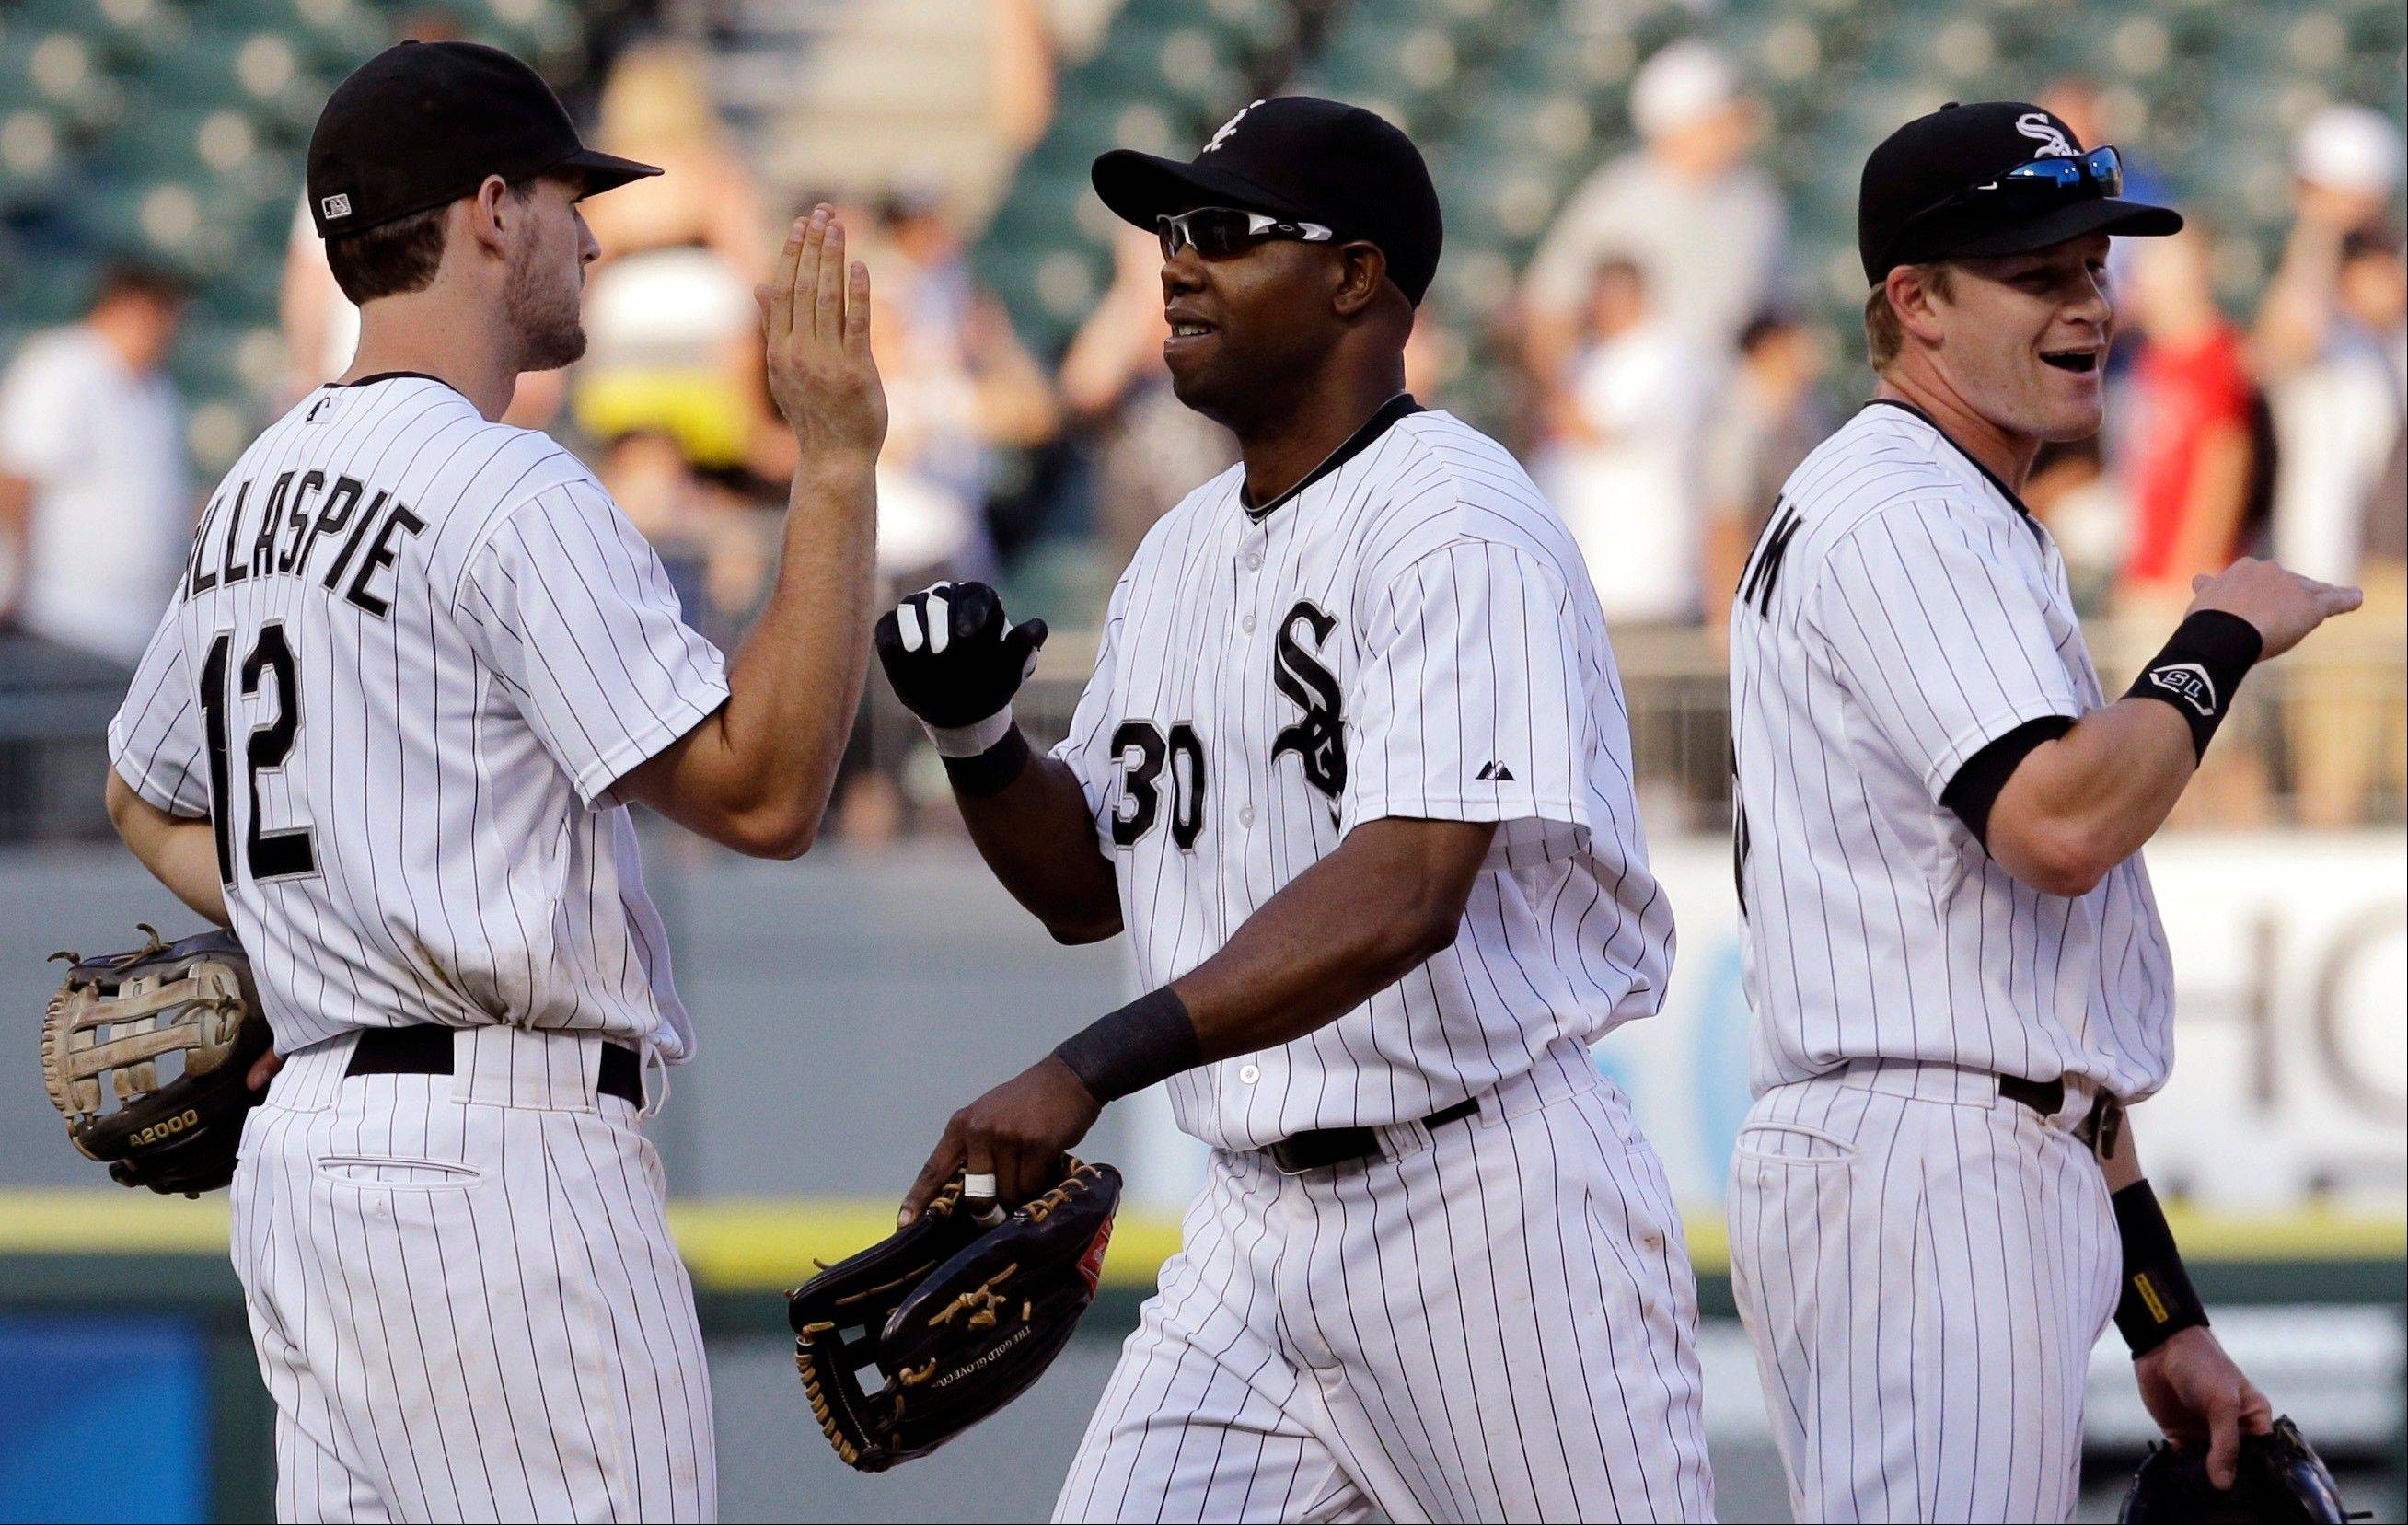 White Sox left fielder Alejandro De Aza, middle, celebrates with teammates Conor Gillaspie, left, and Gordon Beckham after Saturday's 5-4 victory over the Minnesota Twins at U.S. Cellular Field.